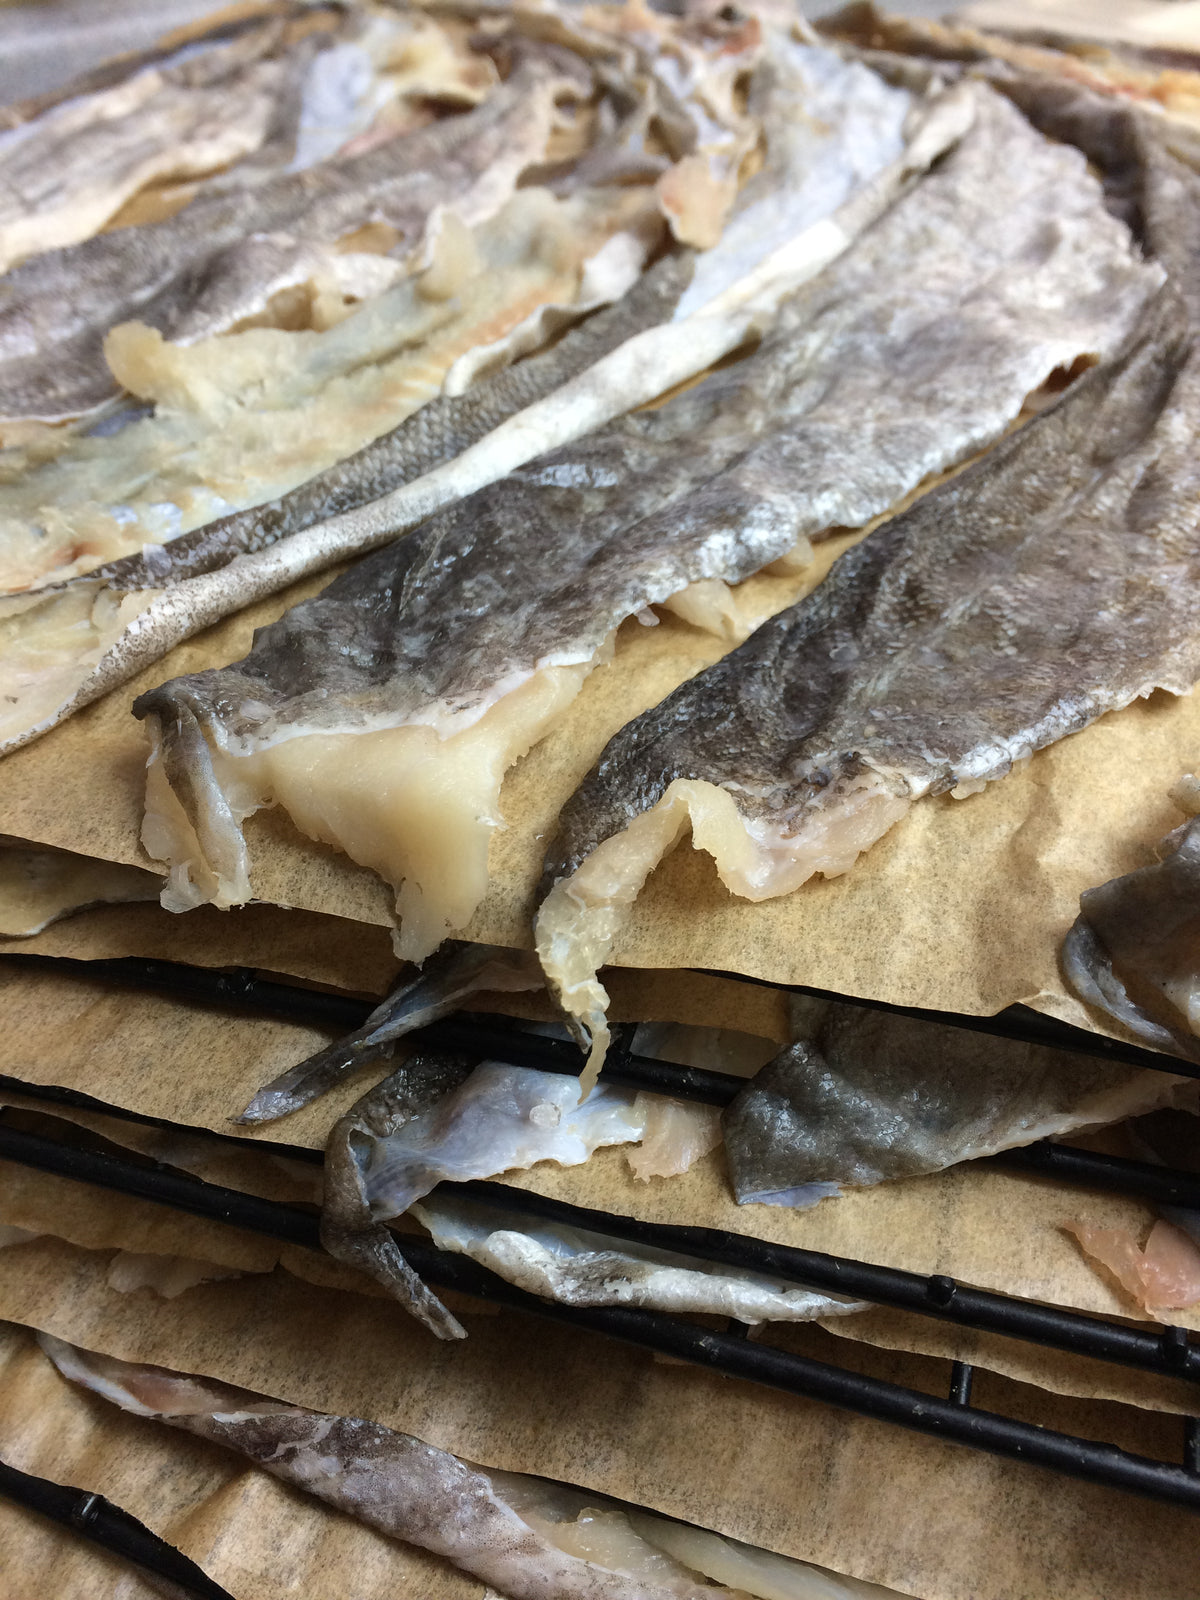 Laid out fresh wild Alaska cod skins for drying.